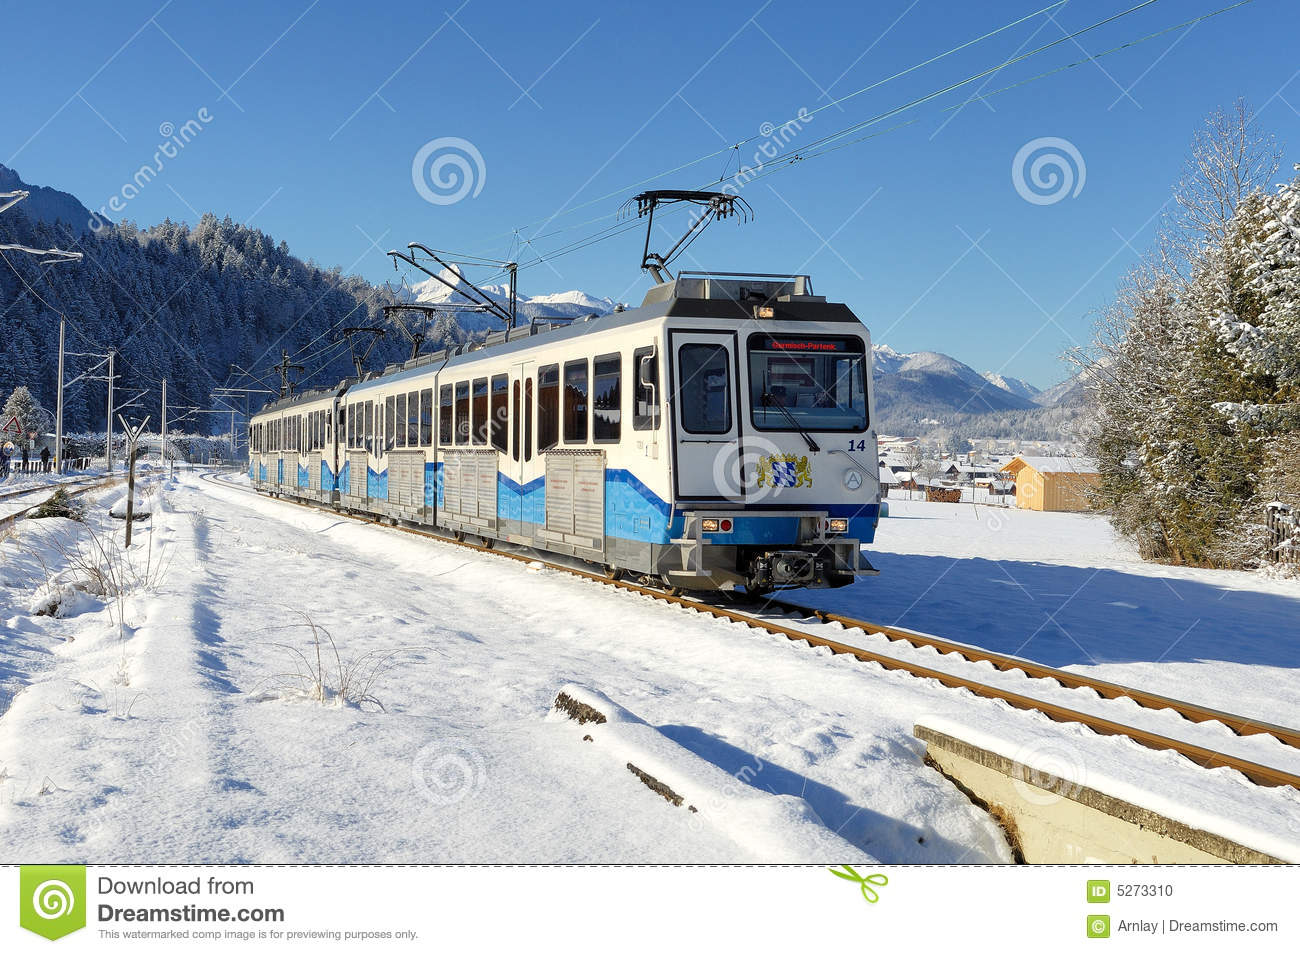 Rack Railway Of The Bayerische Zugspitzbahn Stock Photo.